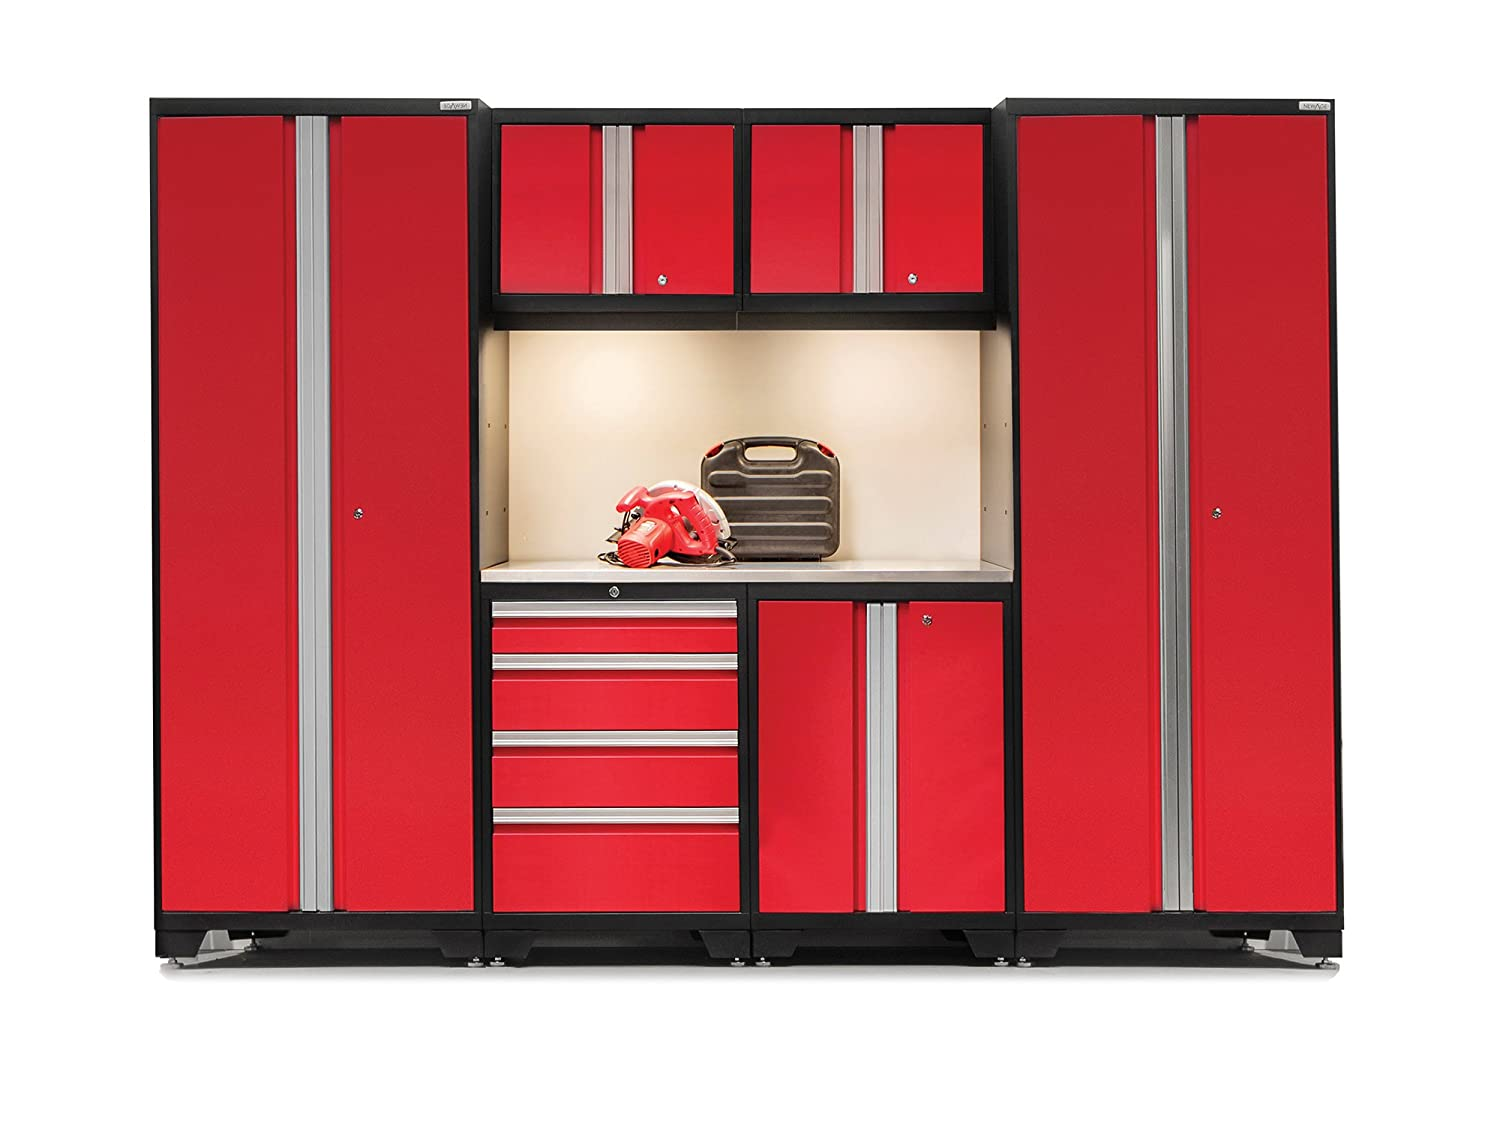 Newage Products Bold 3.0 24-Guage Welded Stainless Steel Worktop Cabinet Set (7-Piece), Red